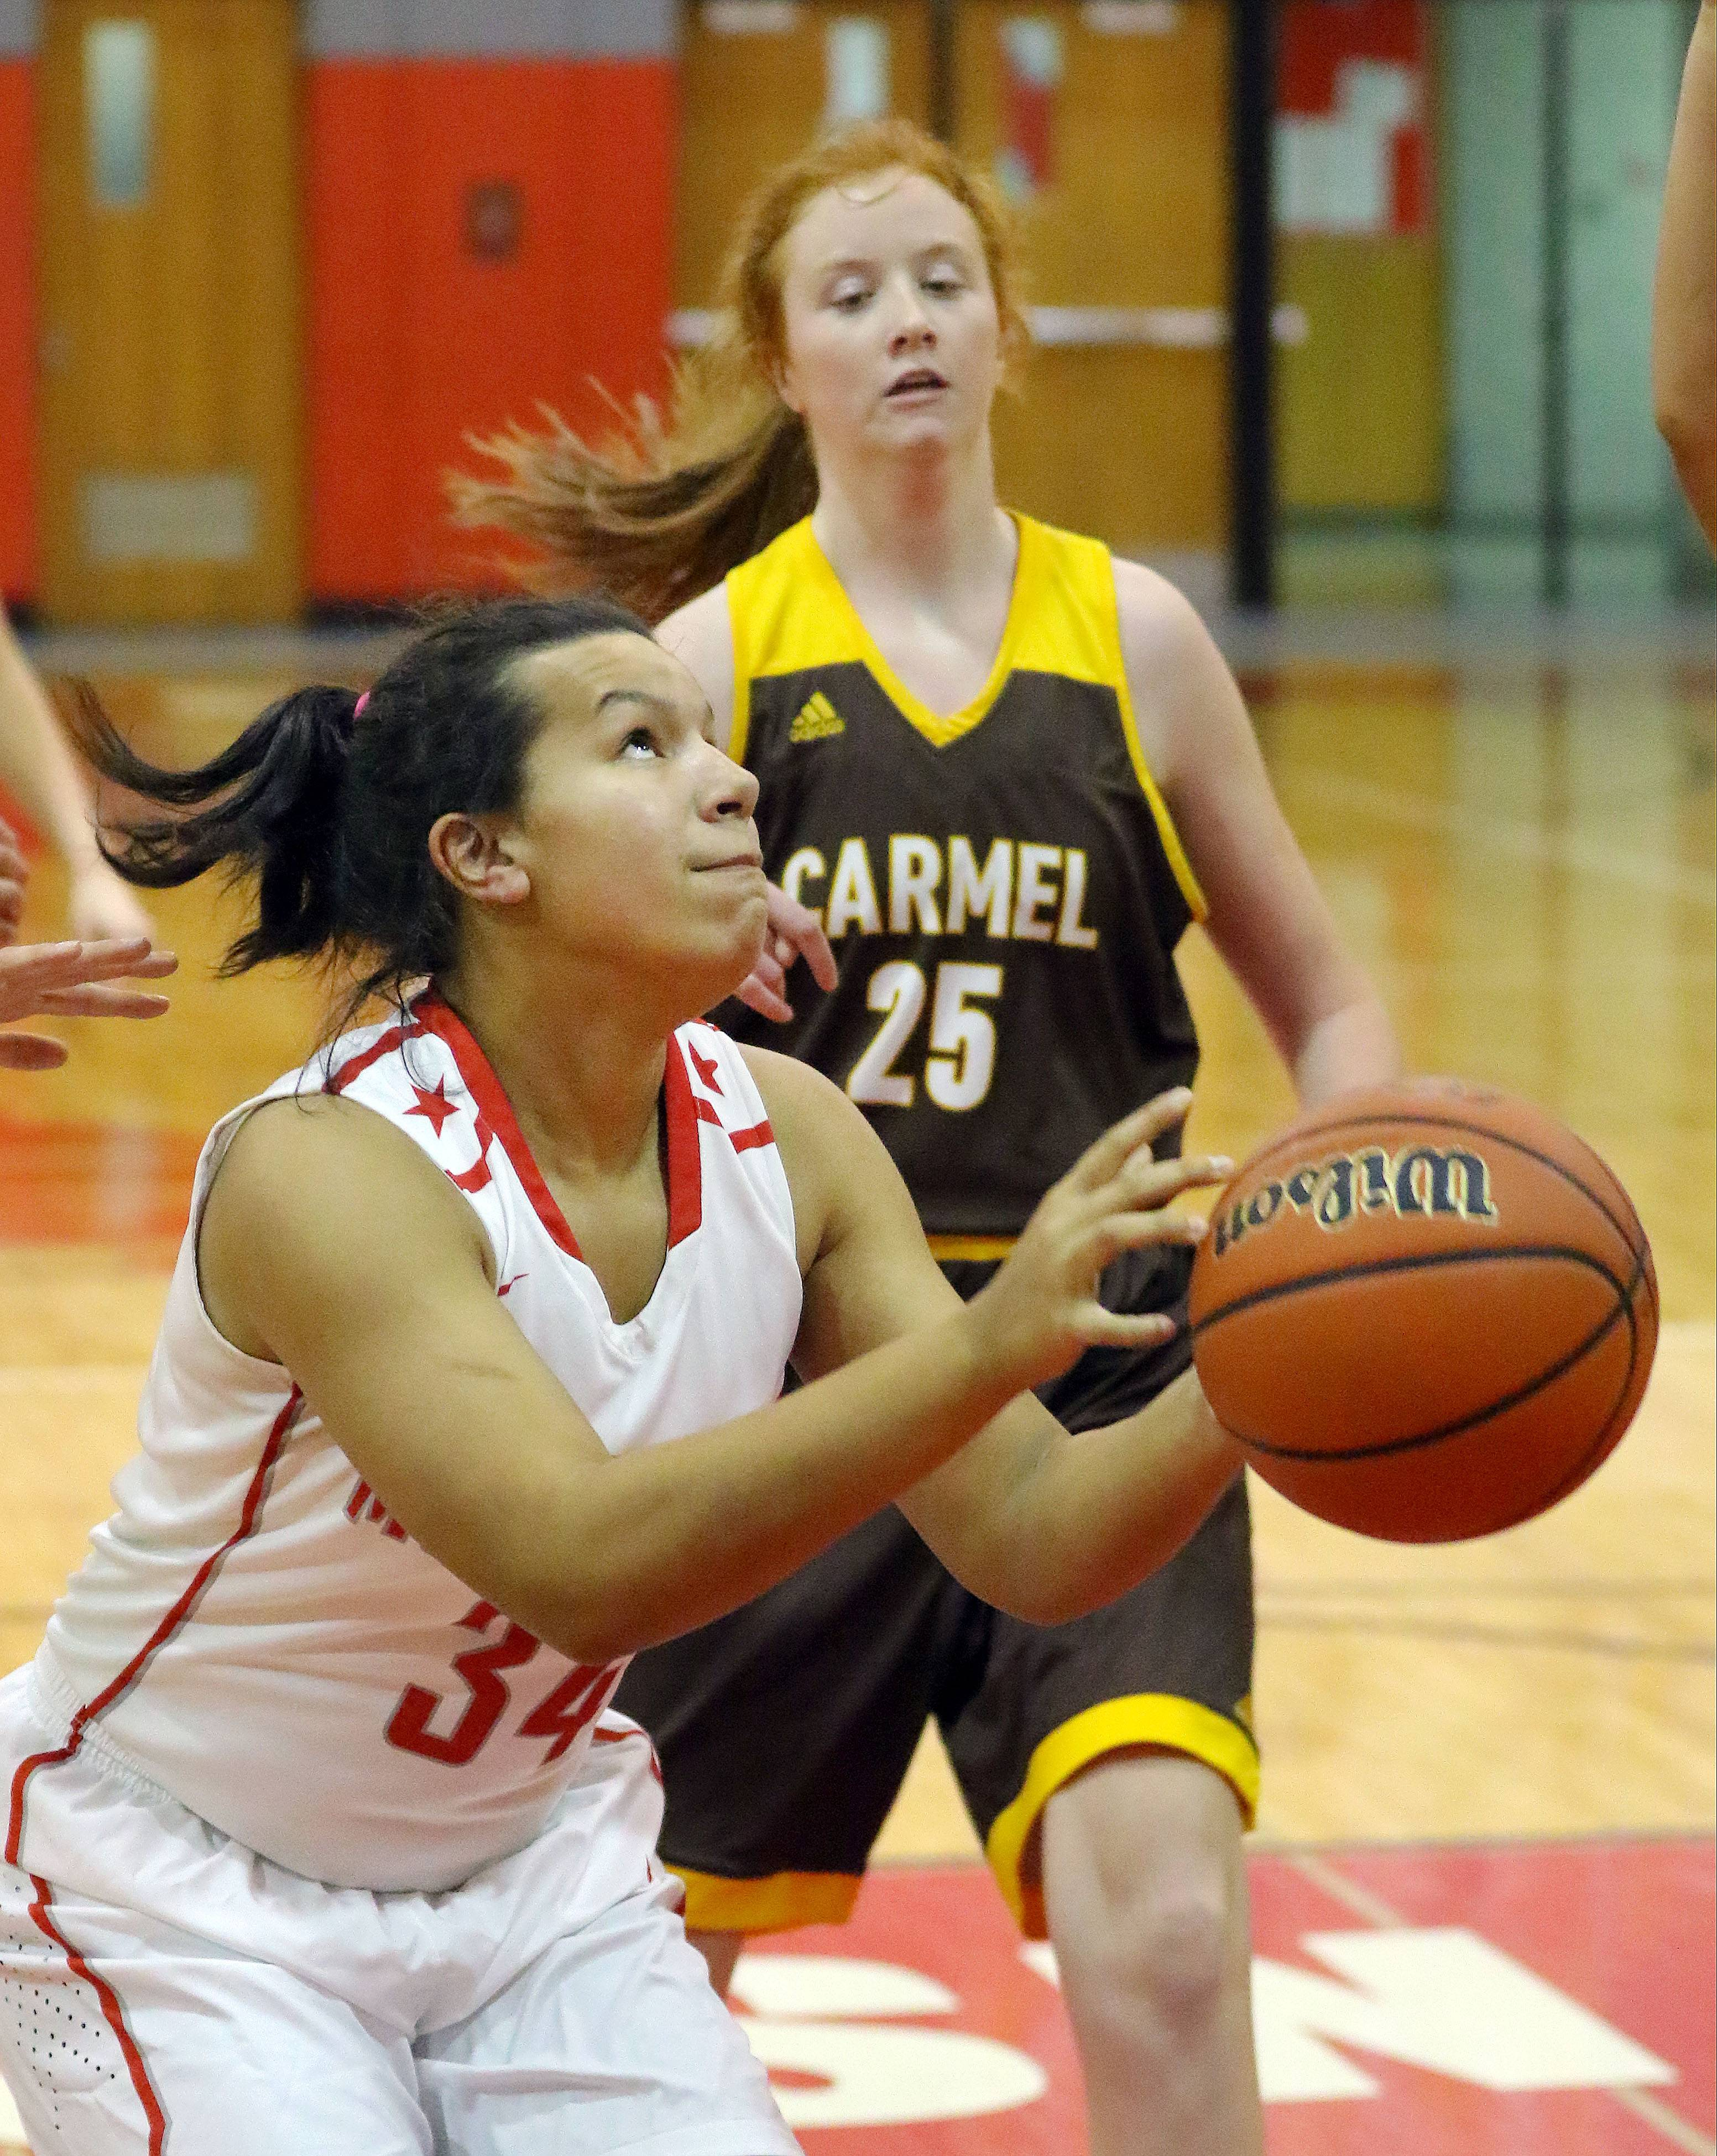 Mundelein's Kendall Klatt, left, looks to shoot as Carmel's Brigit Barr pursues on Tuesday at Mundelein.